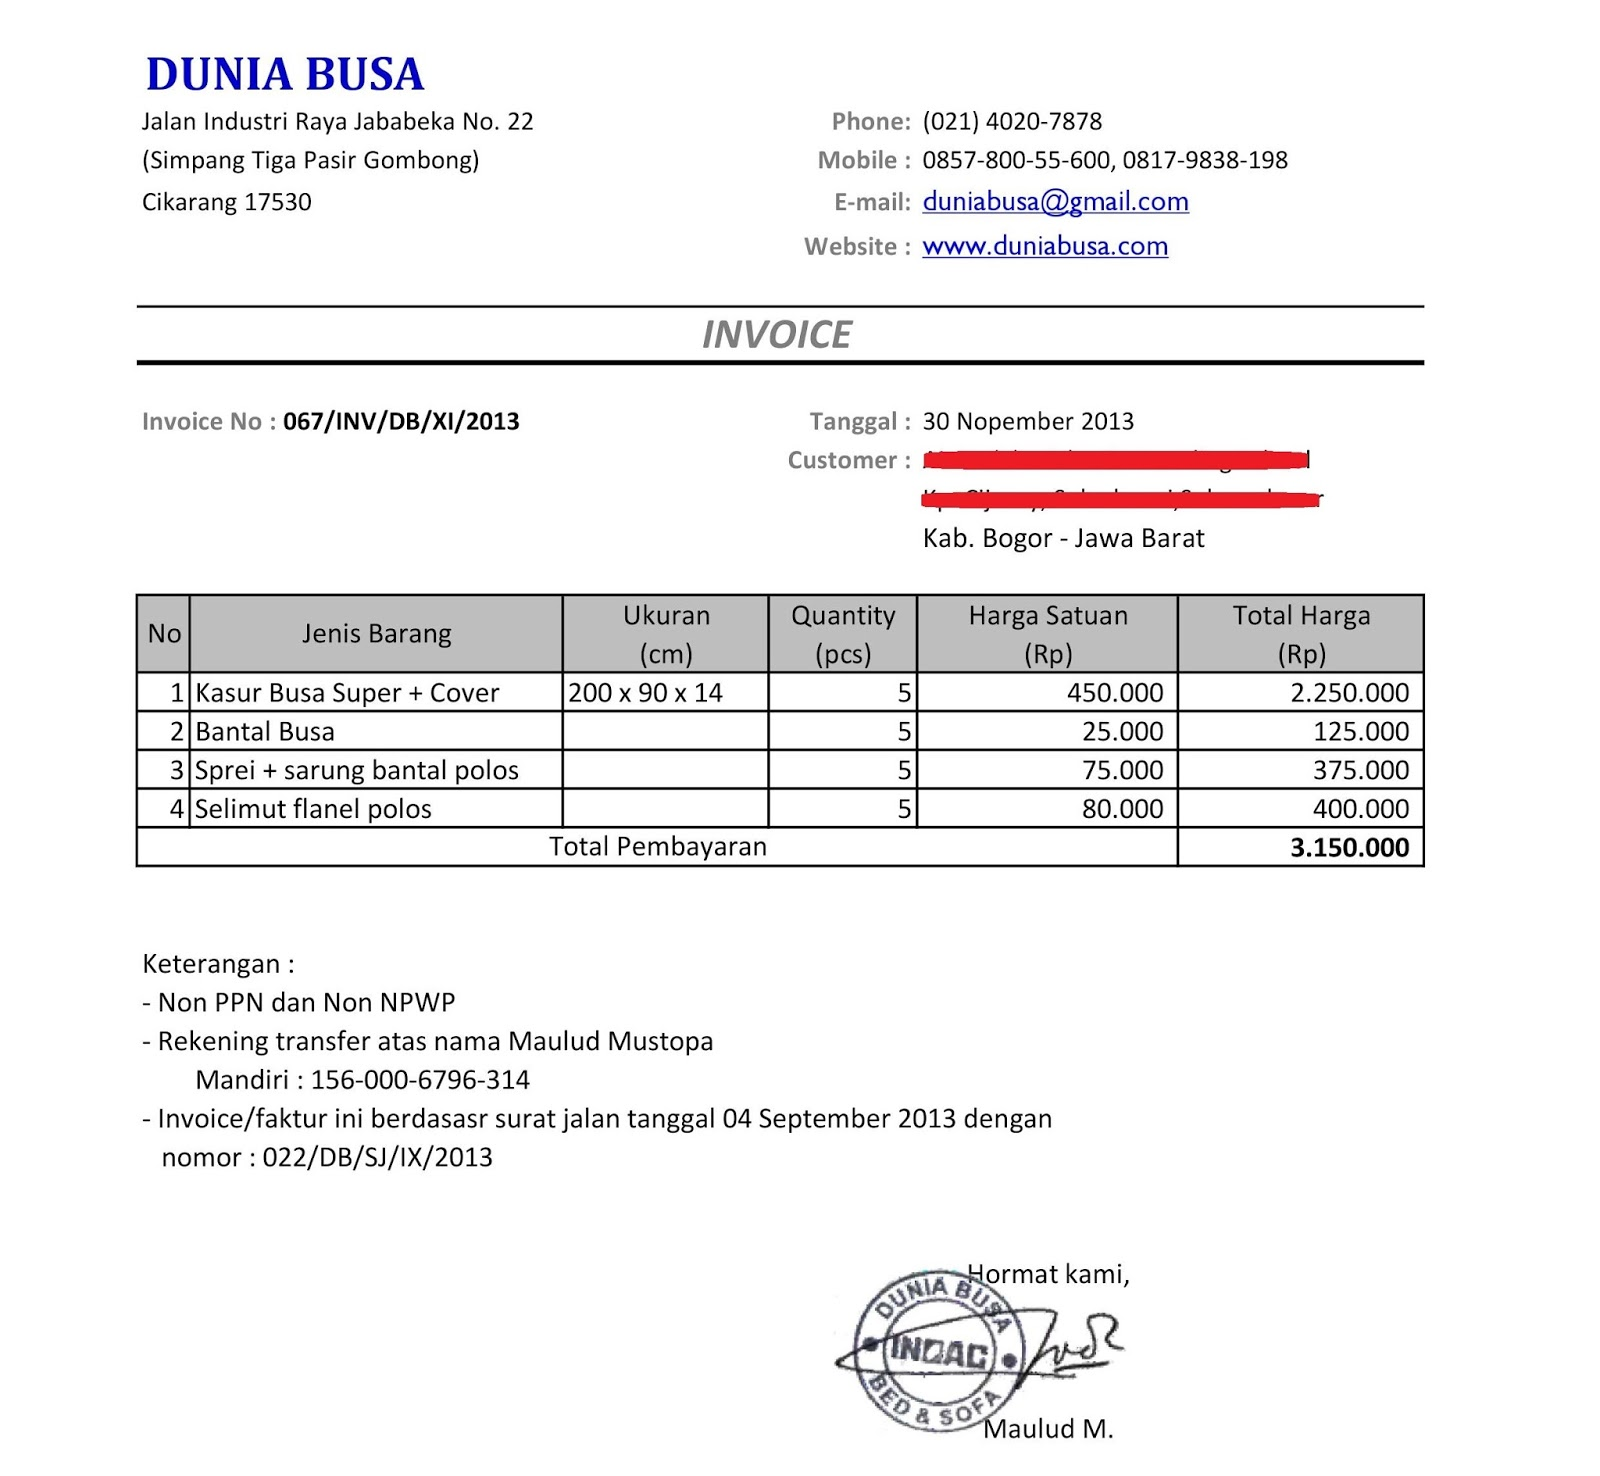 Modaoxus  Pleasant Free Invoice Online  Create Invoice Online  Invoice Template  With Lovely Contoh Format Invoice Atau Surat Tagihan  Brankas Arsip  Free Invoice Online With Appealing Invoice Value Of Cars Also Sample Of Invoice Format In Addition Web Based Invoice And Expenses Invoice Template As Well As Free Printable Invoice Online Additionally Payment Upon Receipt Of Invoice From Sklepco With Modaoxus  Lovely Free Invoice Online  Create Invoice Online  Invoice Template  With Appealing Contoh Format Invoice Atau Surat Tagihan  Brankas Arsip  Free Invoice Online And Pleasant Invoice Value Of Cars Also Sample Of Invoice Format In Addition Web Based Invoice From Sklepco